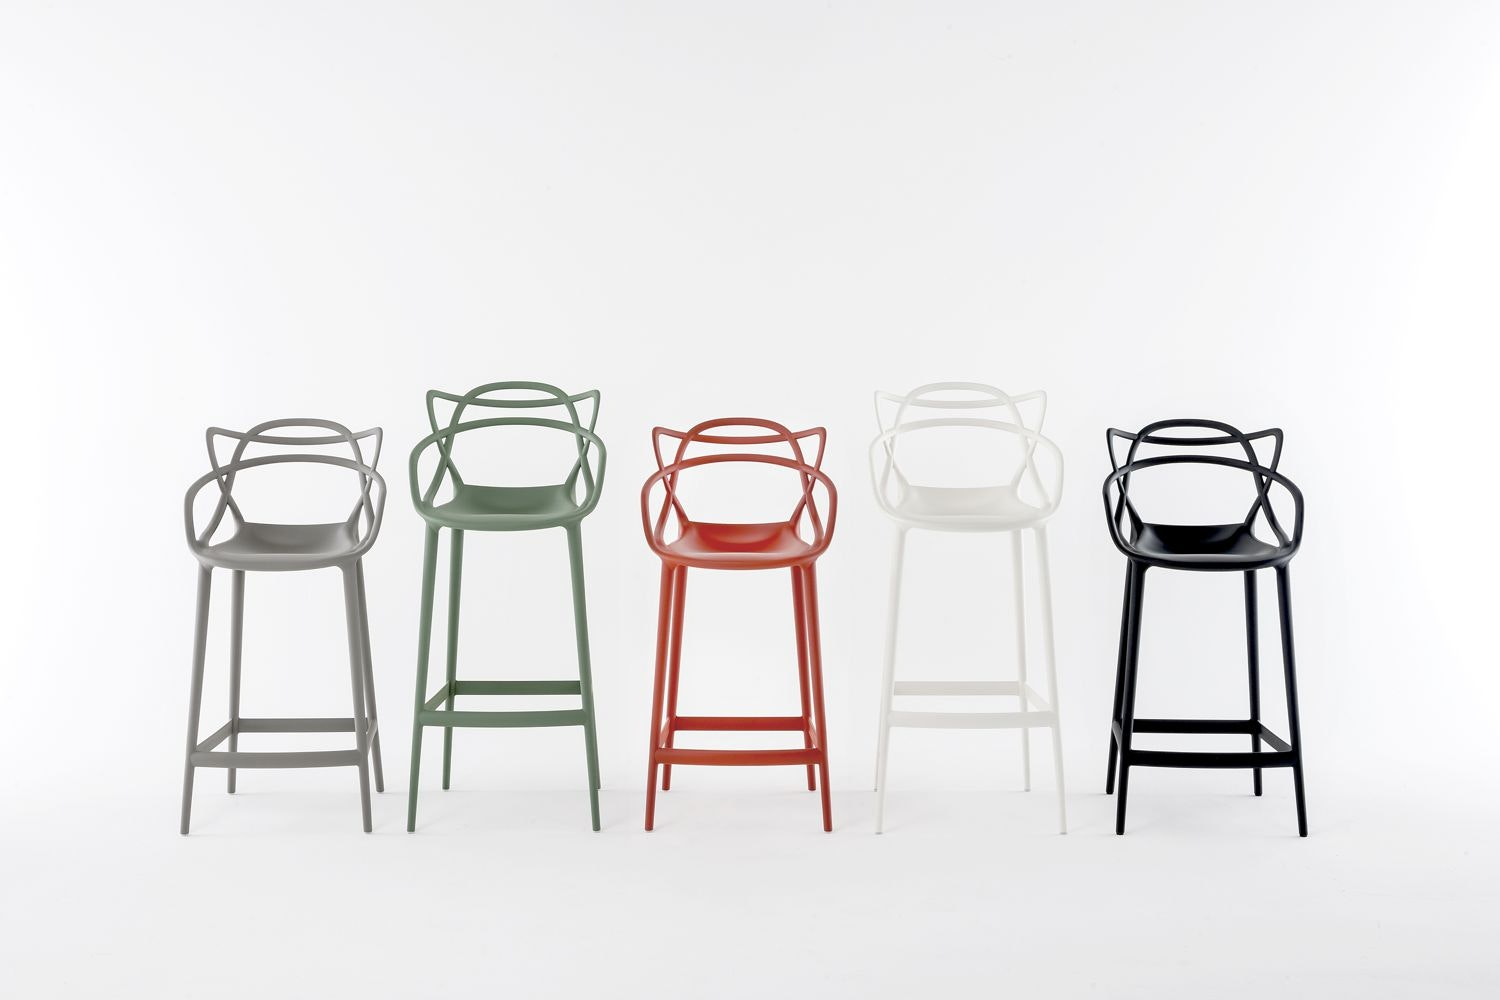 Masters Low Stool by Philippe Starck with Eugeni Quitllet for Kartell